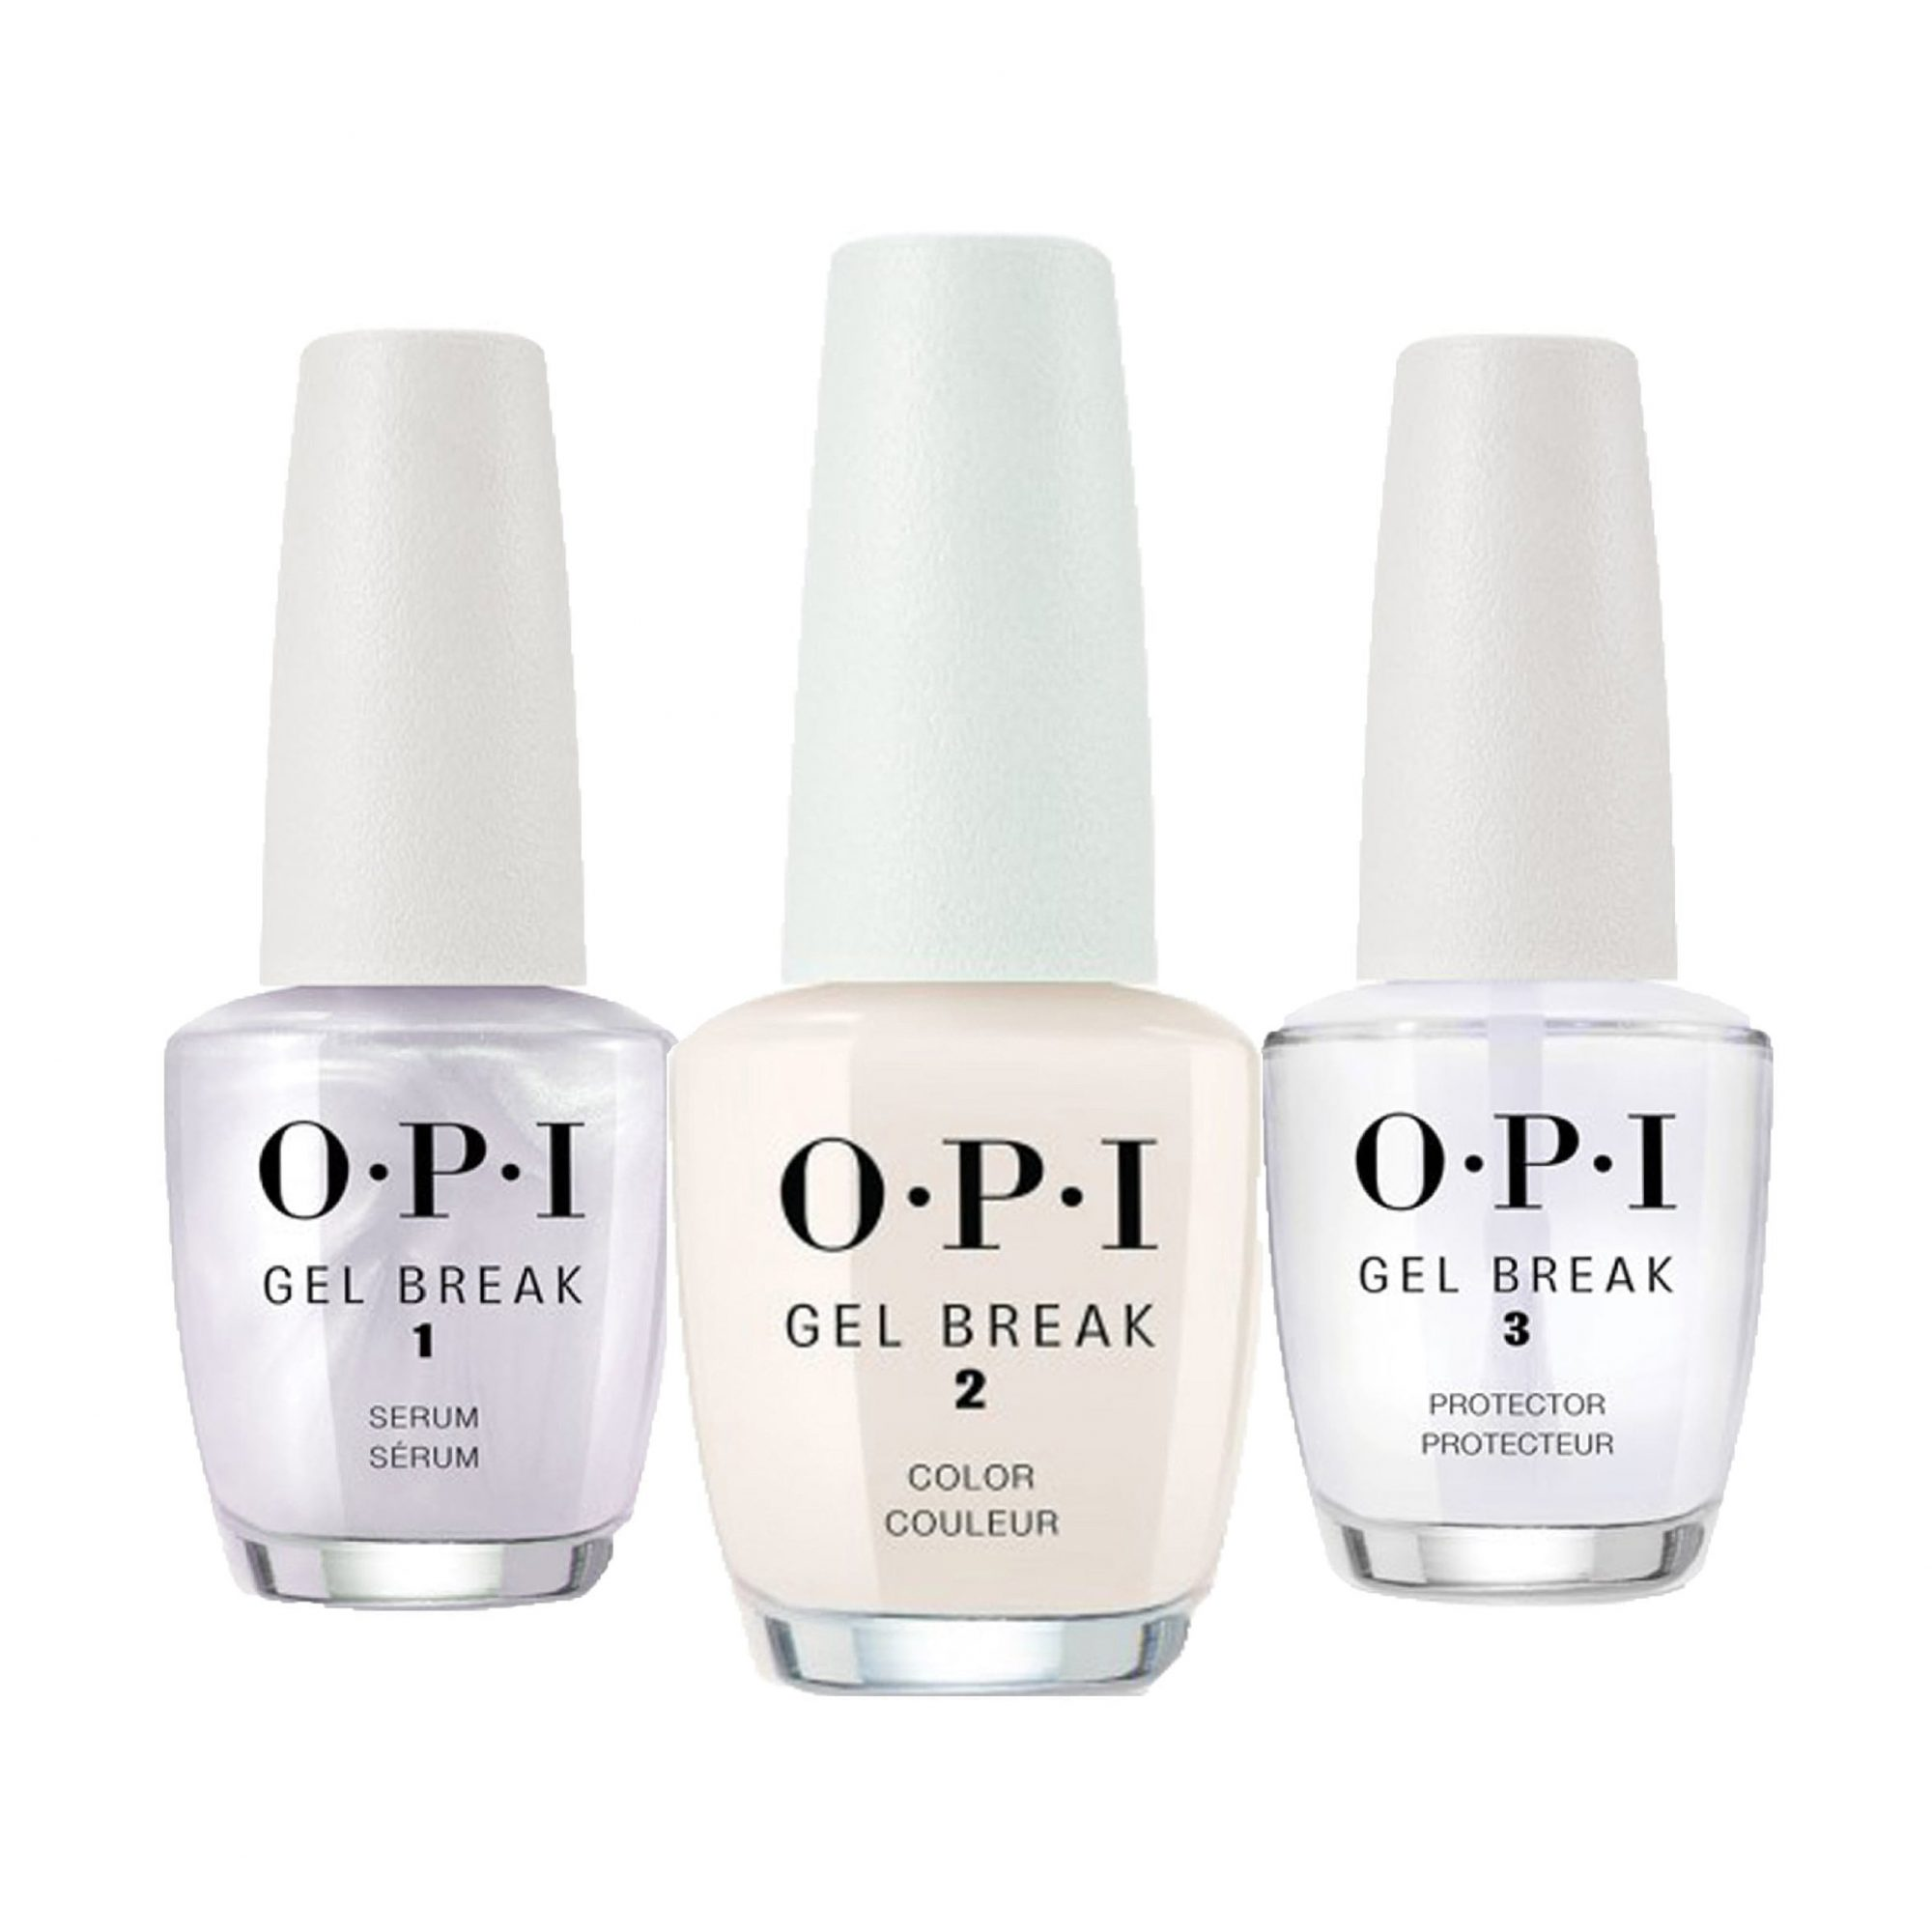 OPI Gel Break System